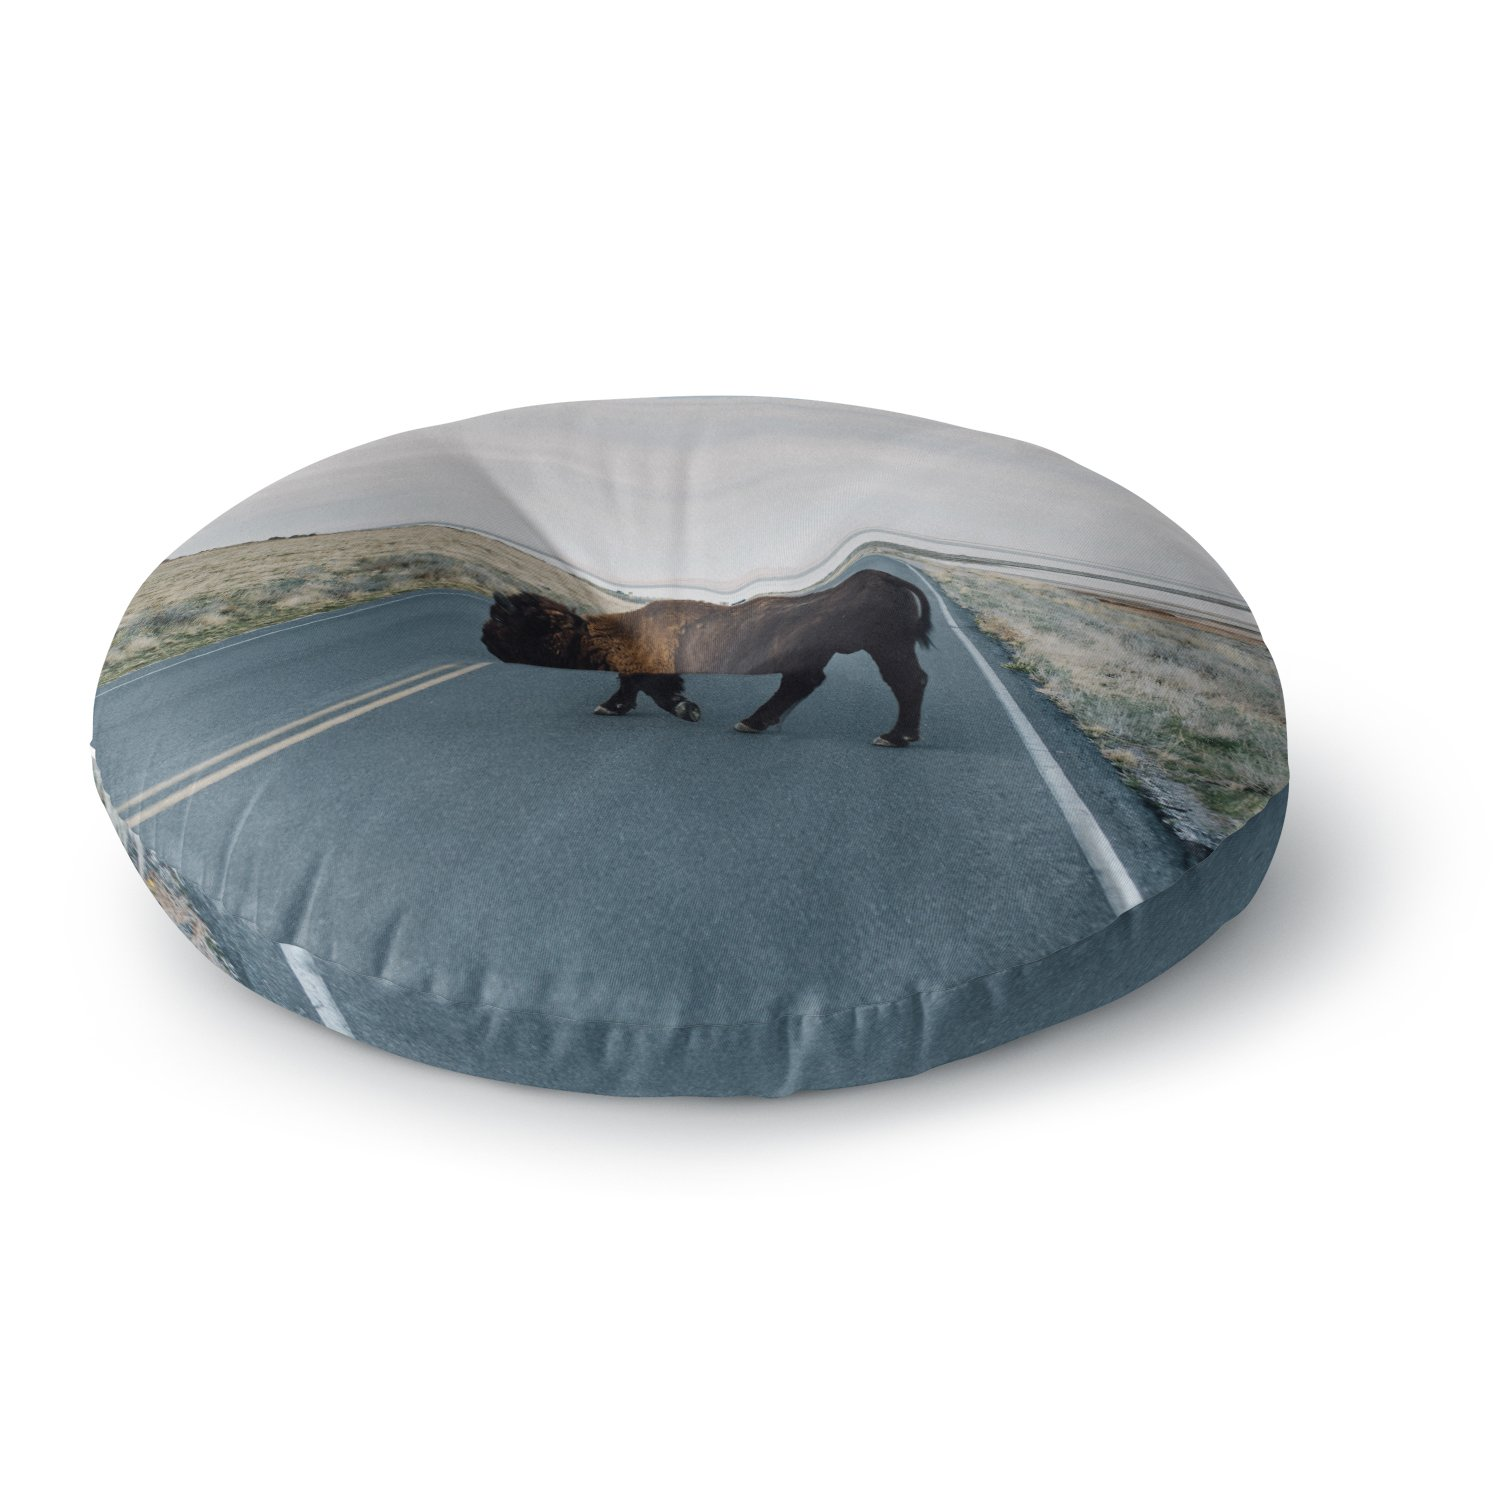 KESS InHouse Chelsea Victoria Buffalo Crossing Brown Blue Animals Photography Round Floor Pillow, 26''